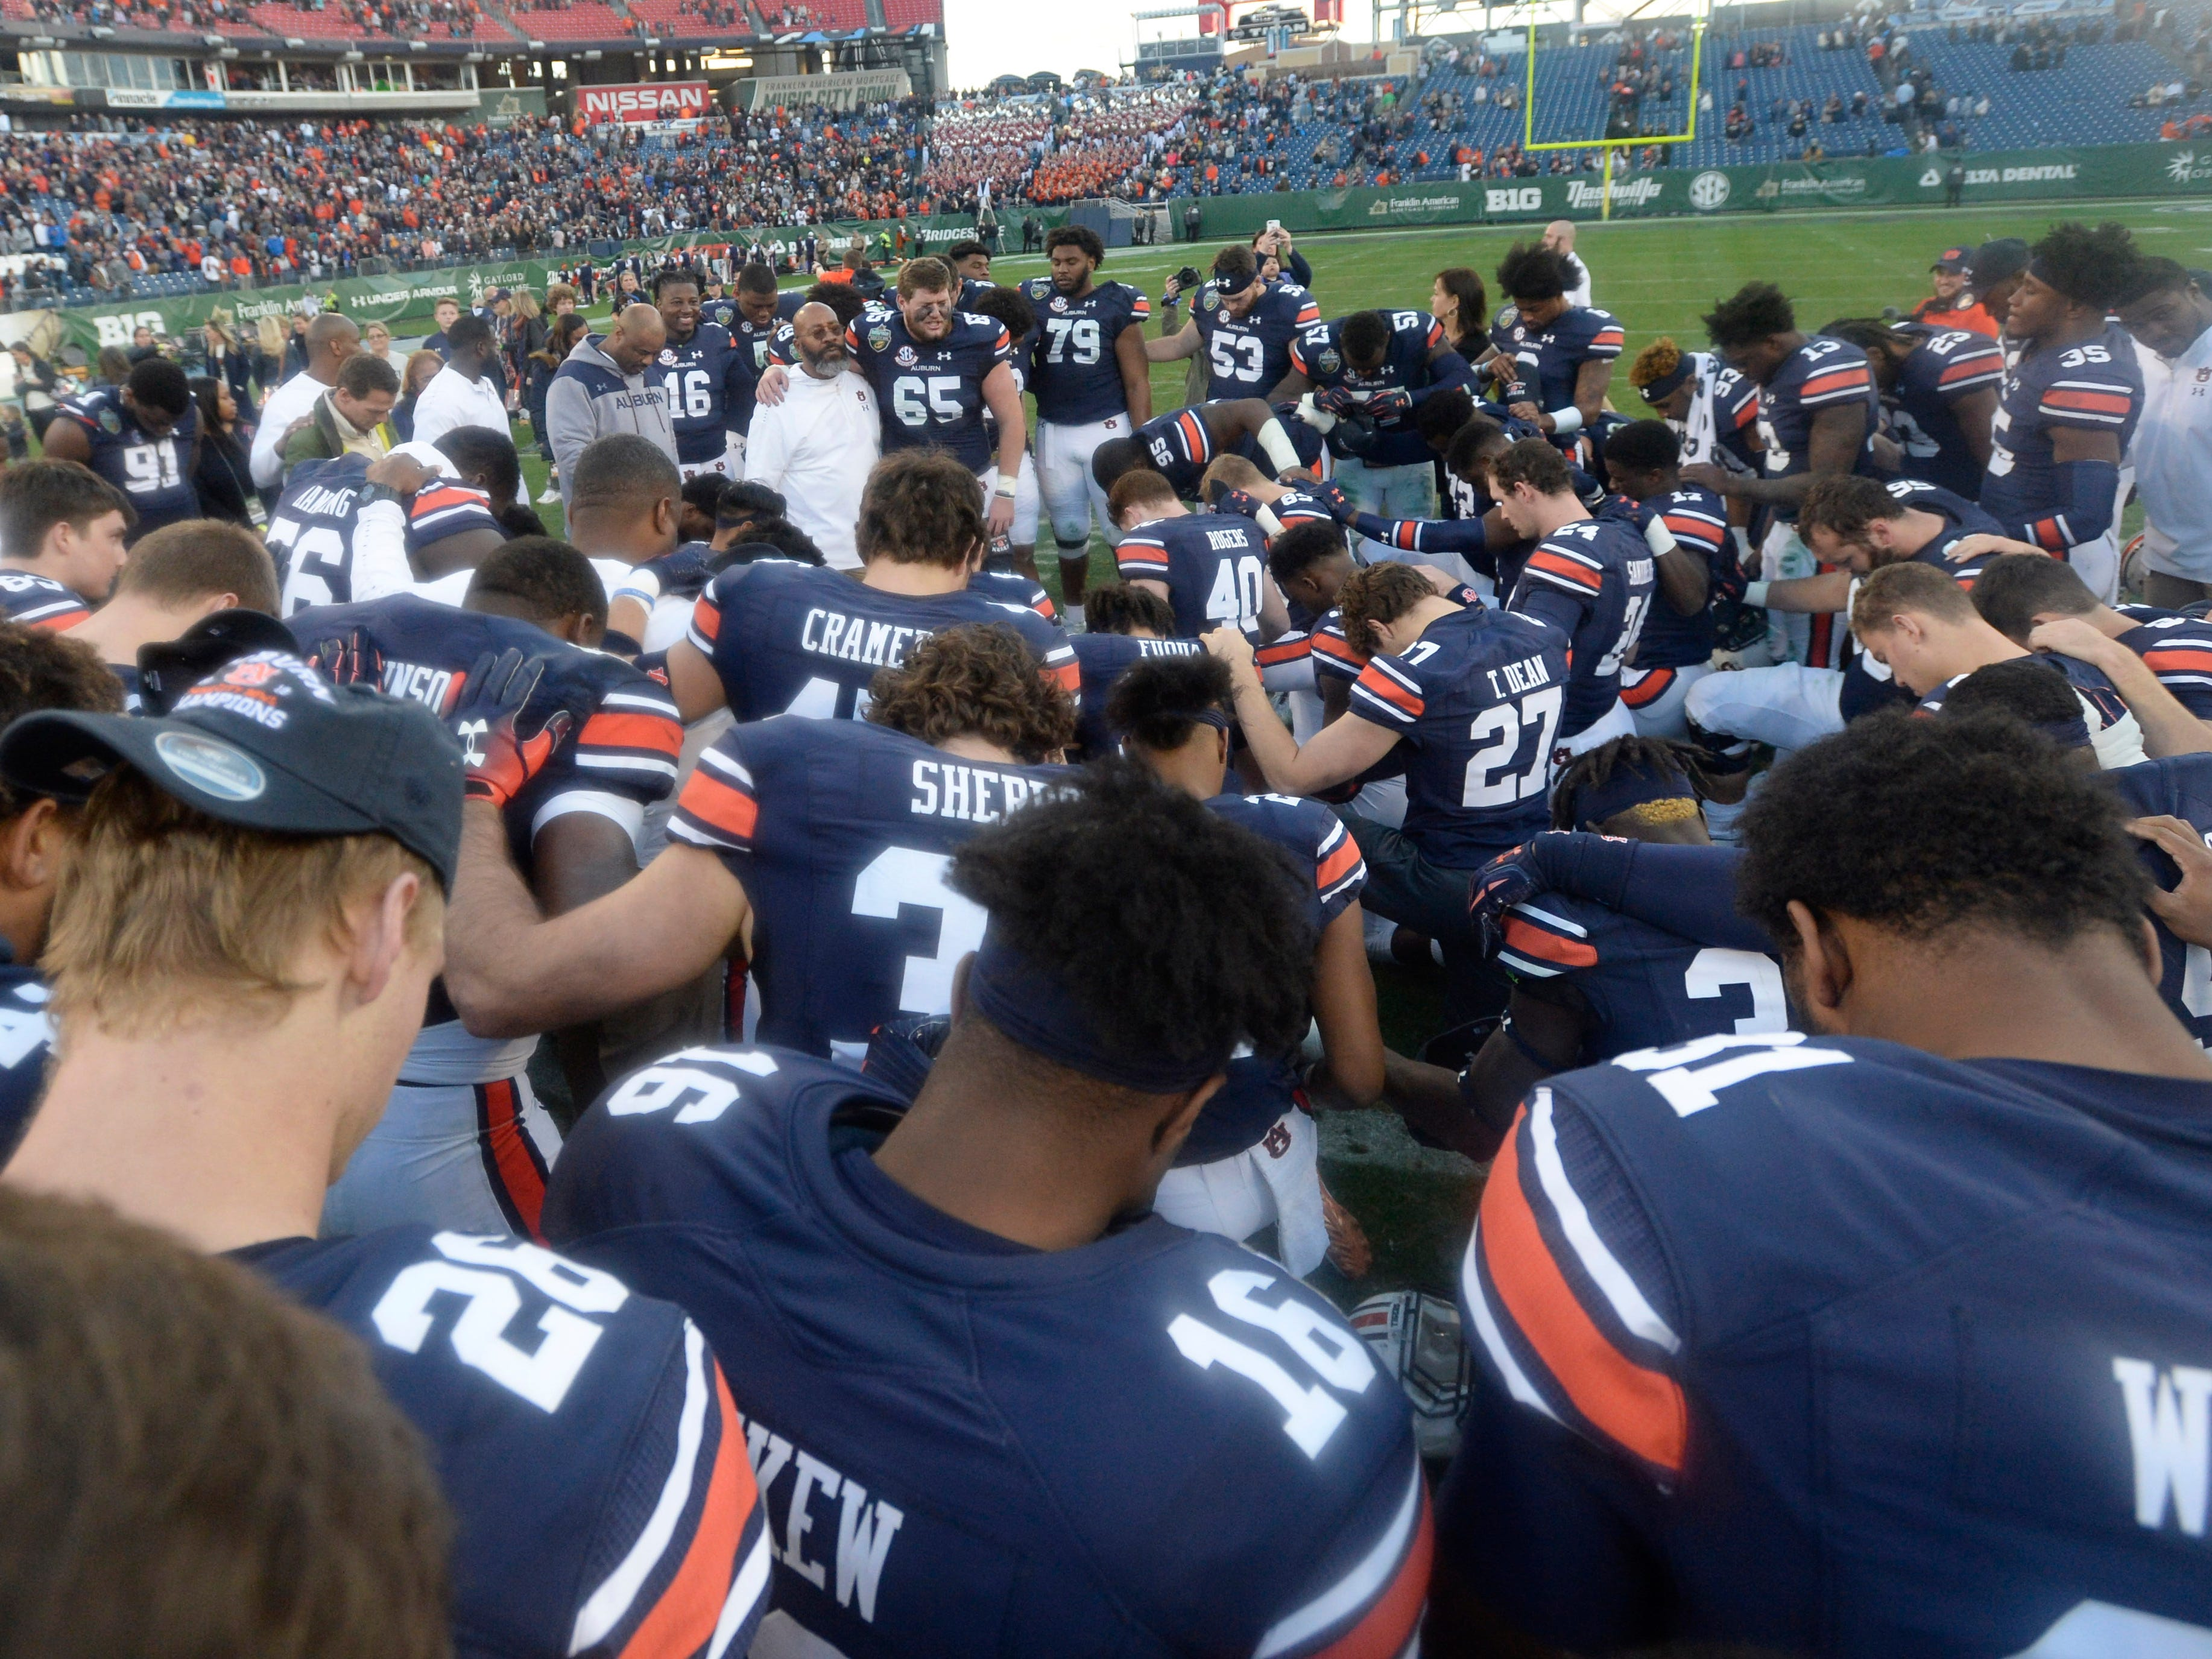 Auburn players and staff pray after the team's 63-14 win over Purdue in the Music City Bowl NCAA college football game Friday, Dec. 28, 2018, at Nissan Stadium in Nashville, Tenn.